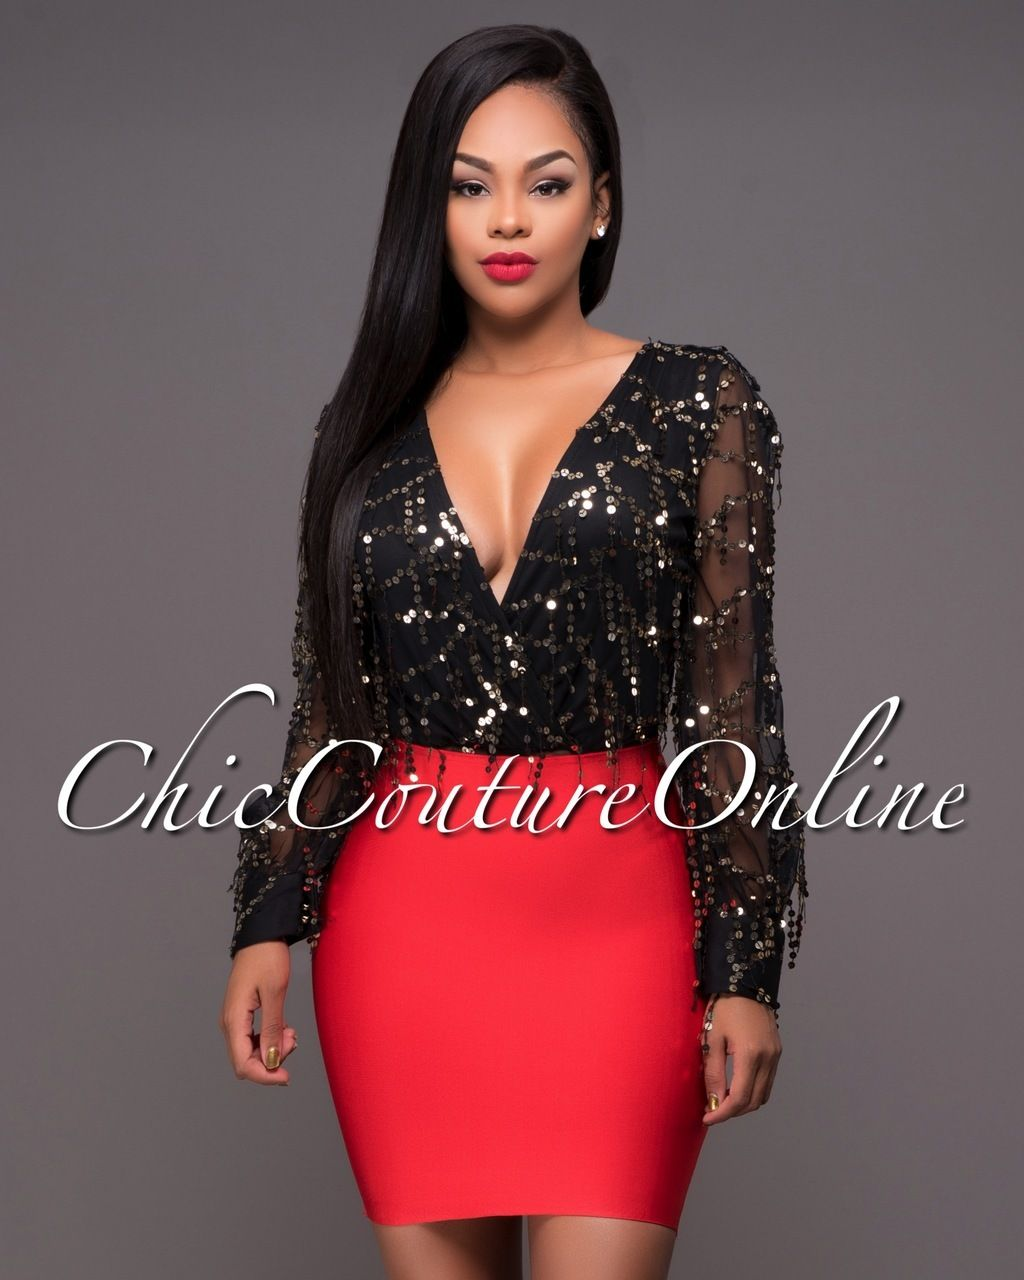 Chic Couture Online - Wynn Red Elastic Body-Con MiniSkirt.(http://www.chiccoutureonline.com/wynn-red-elastic-body-con-miniskirt/)